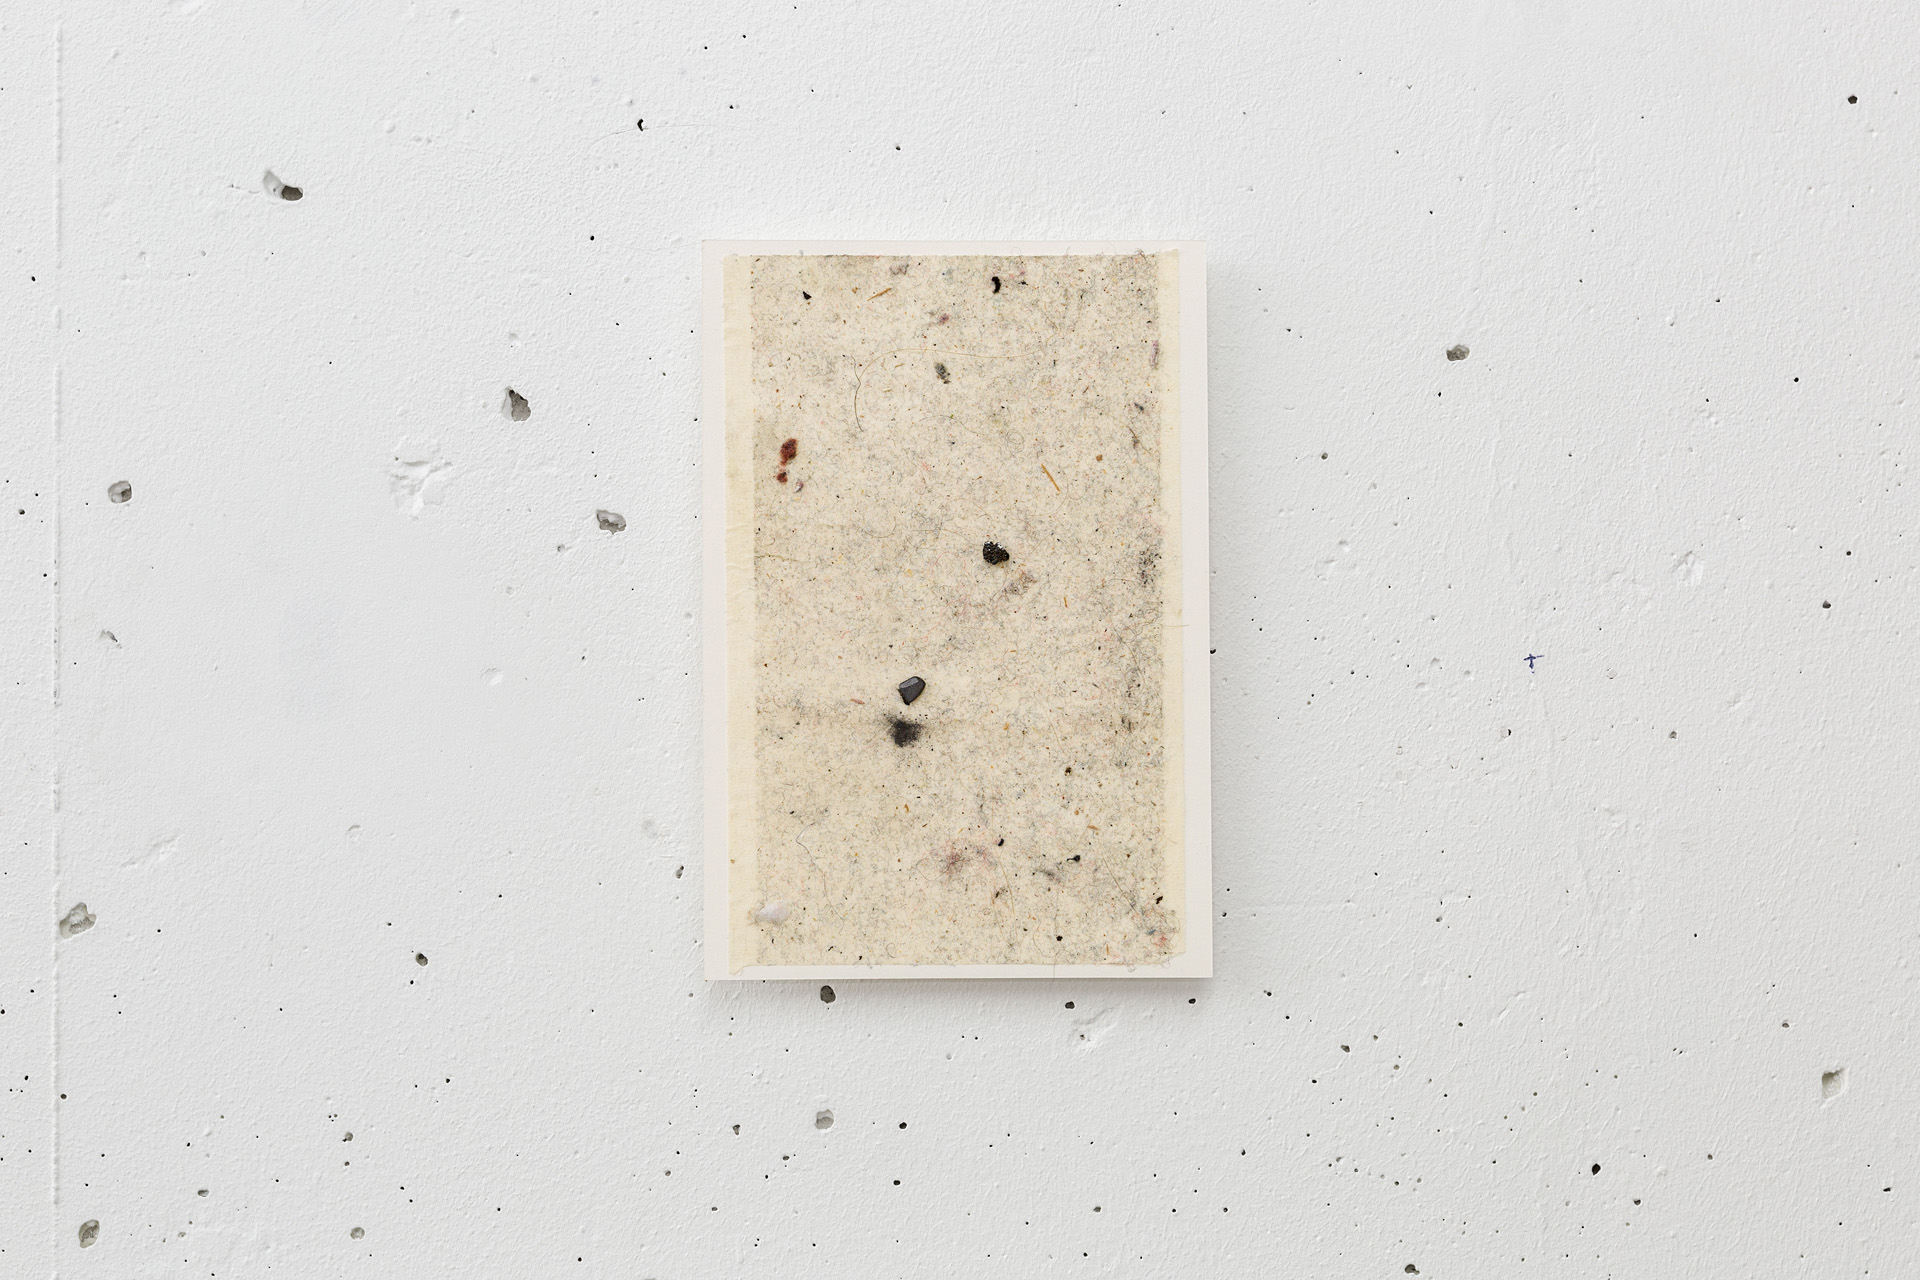 Dust painting , 2017 various dusts and particules, adhesive sheet, mounted on paper 16 x 11 cm  photo © Romain Darnaud